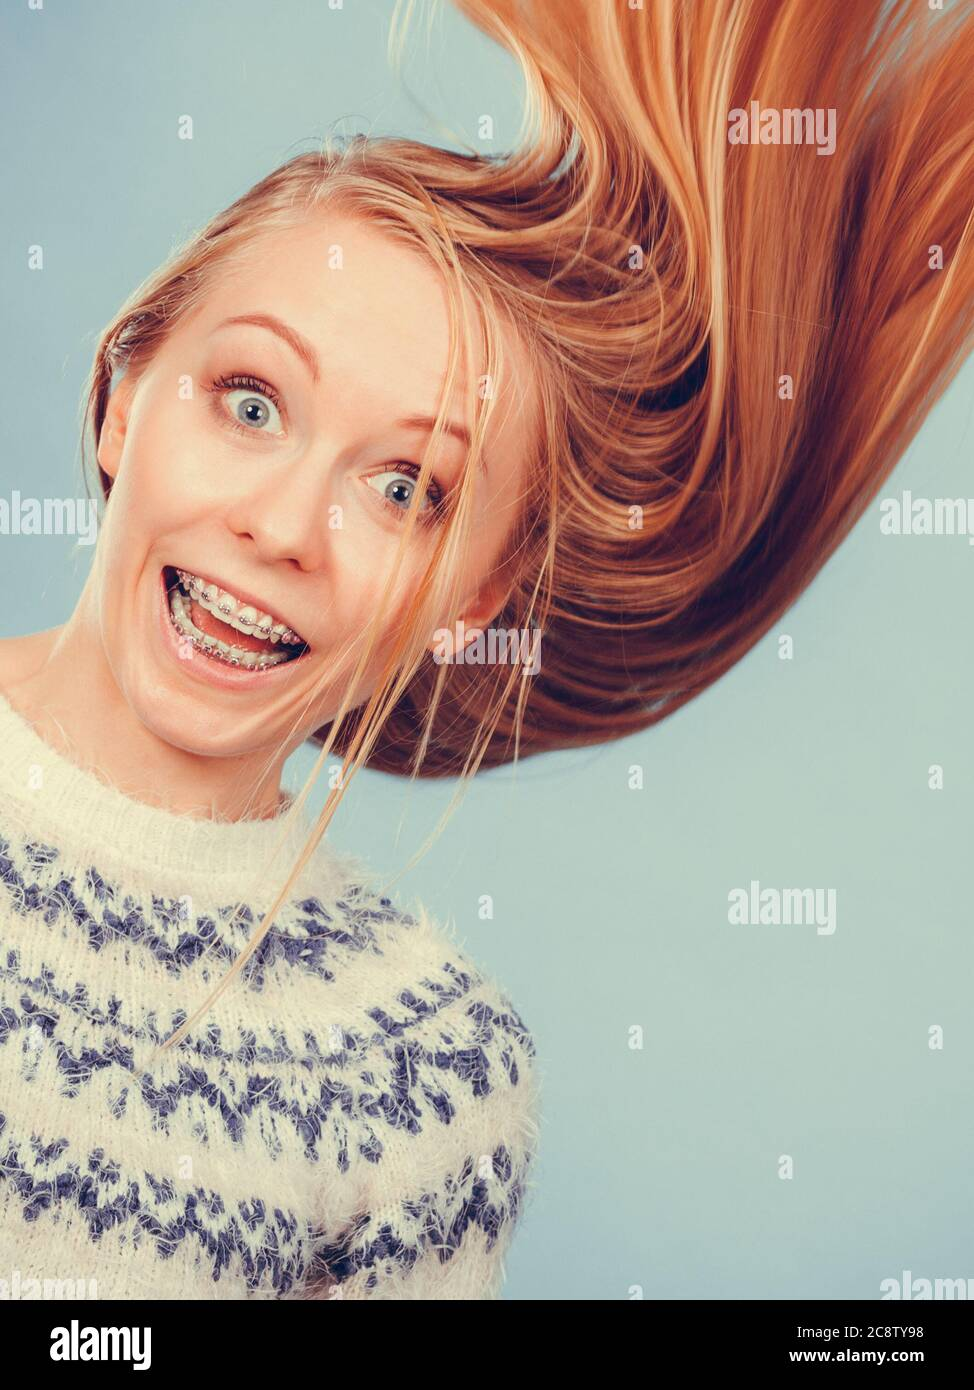 Hairstyles Ideas Happiness Concept Crazy Teenage Woman Wearing Winter Jumper With Windblown Blonde Hair Stock Photo Alamy